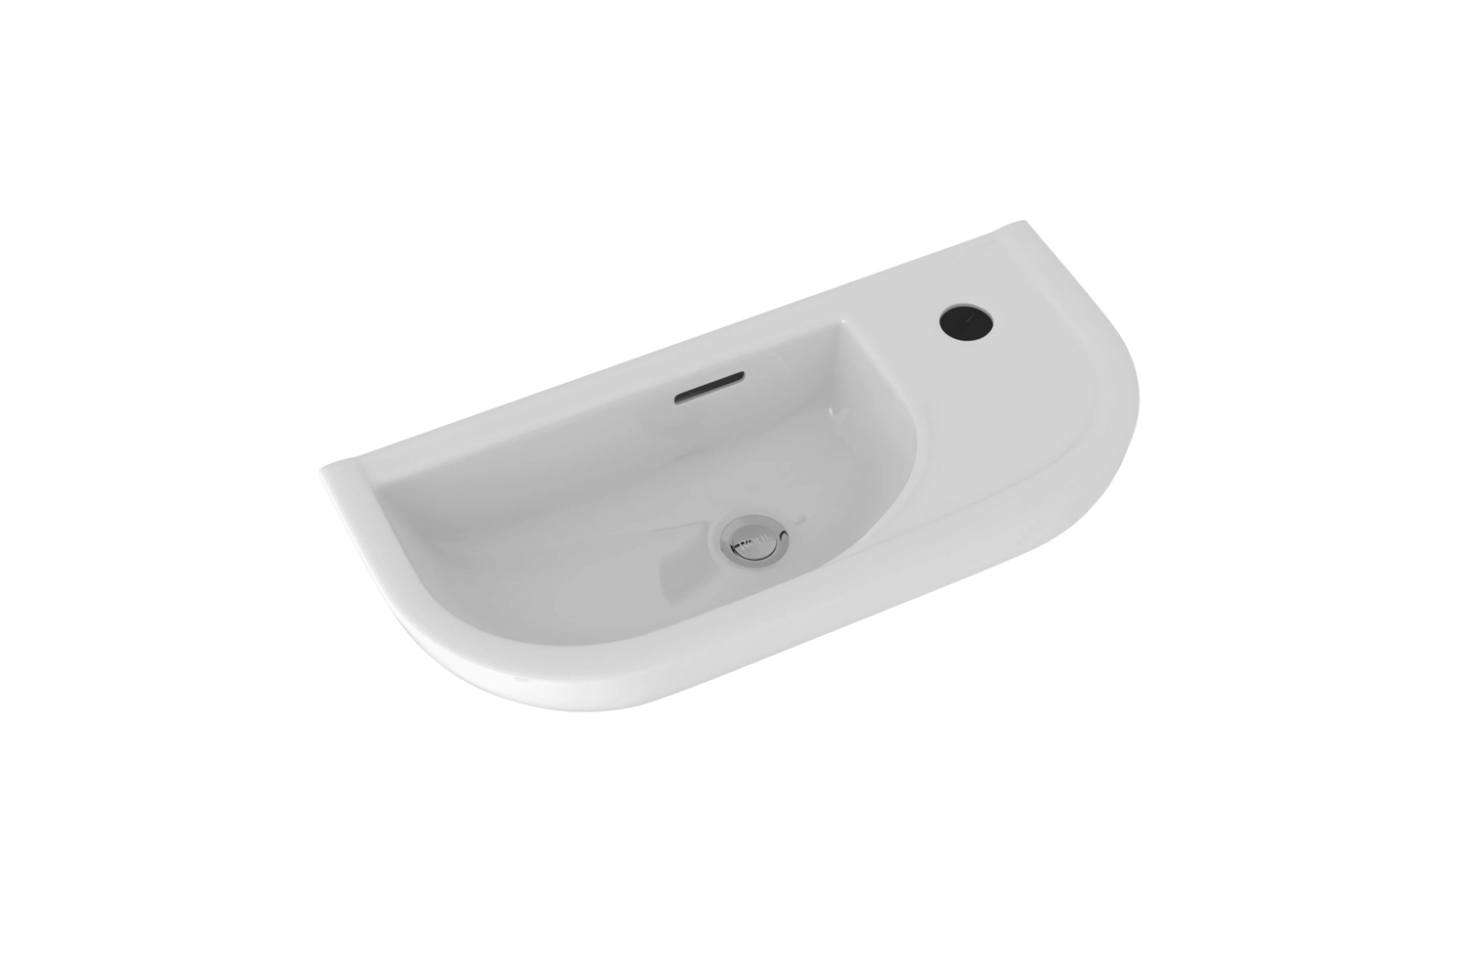 The Rohl Allia Wall-Mount Bath Basin is $8. from Quality Bath.